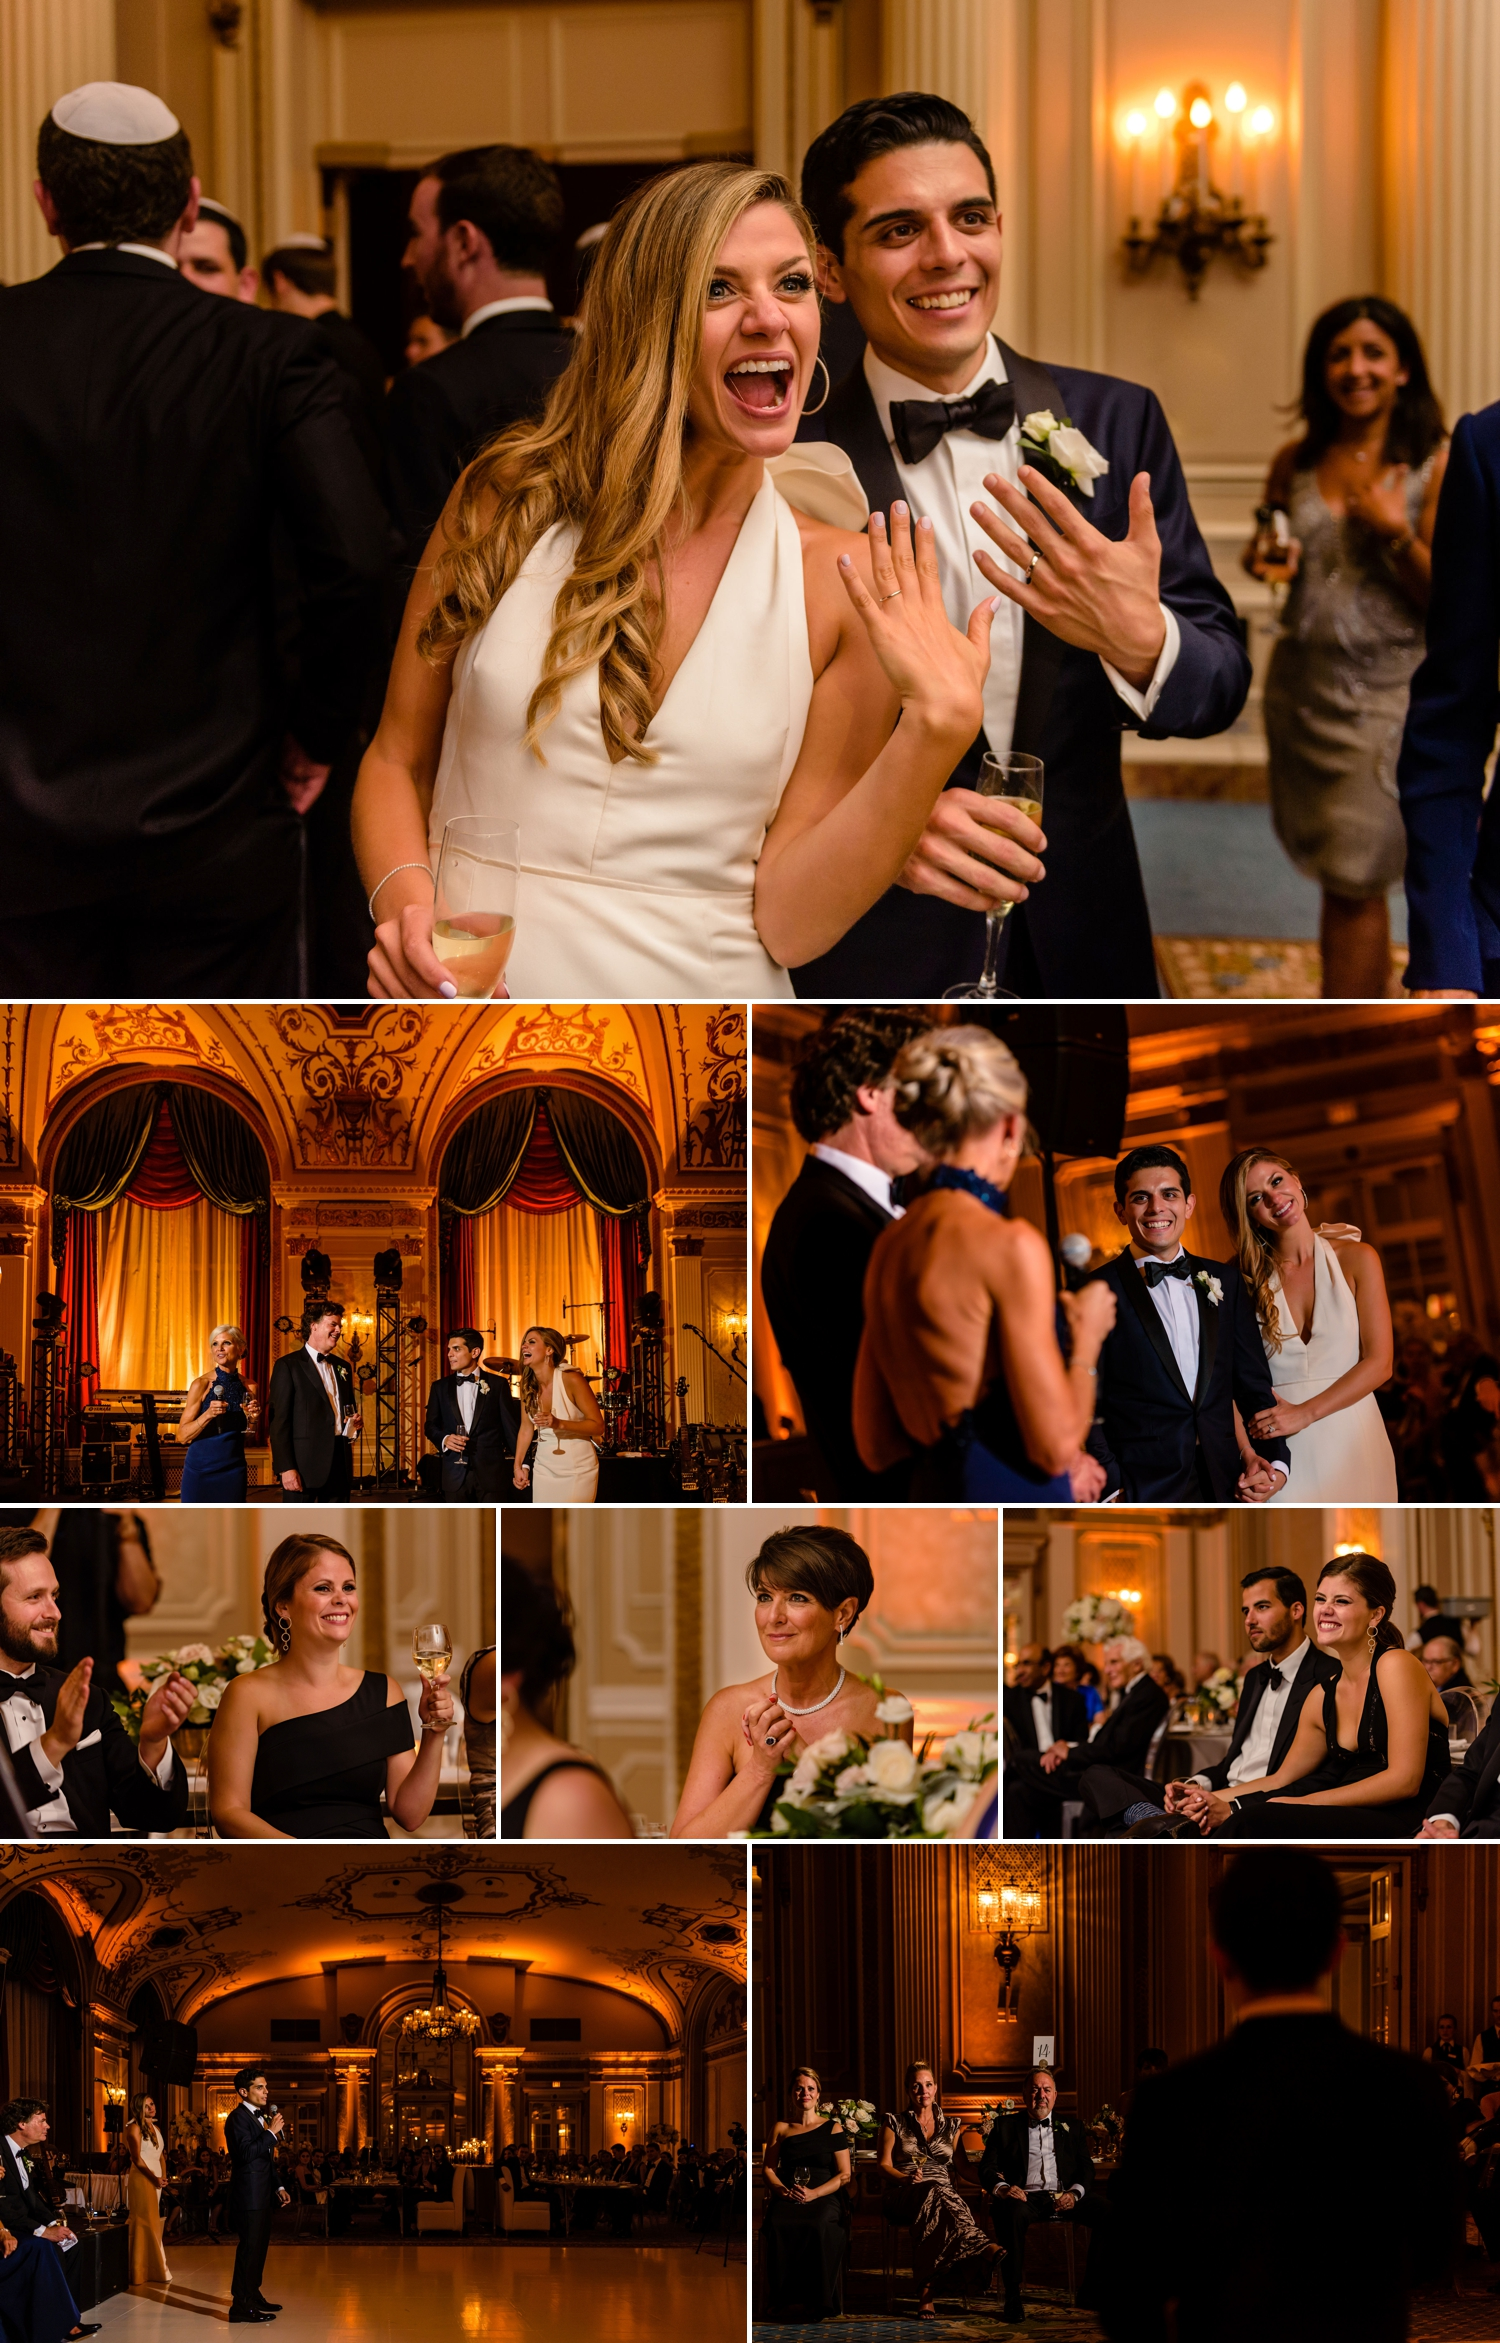 photos of candid moments during a jewish wedding reception at the chateau laurier wedding in ottawa ontario